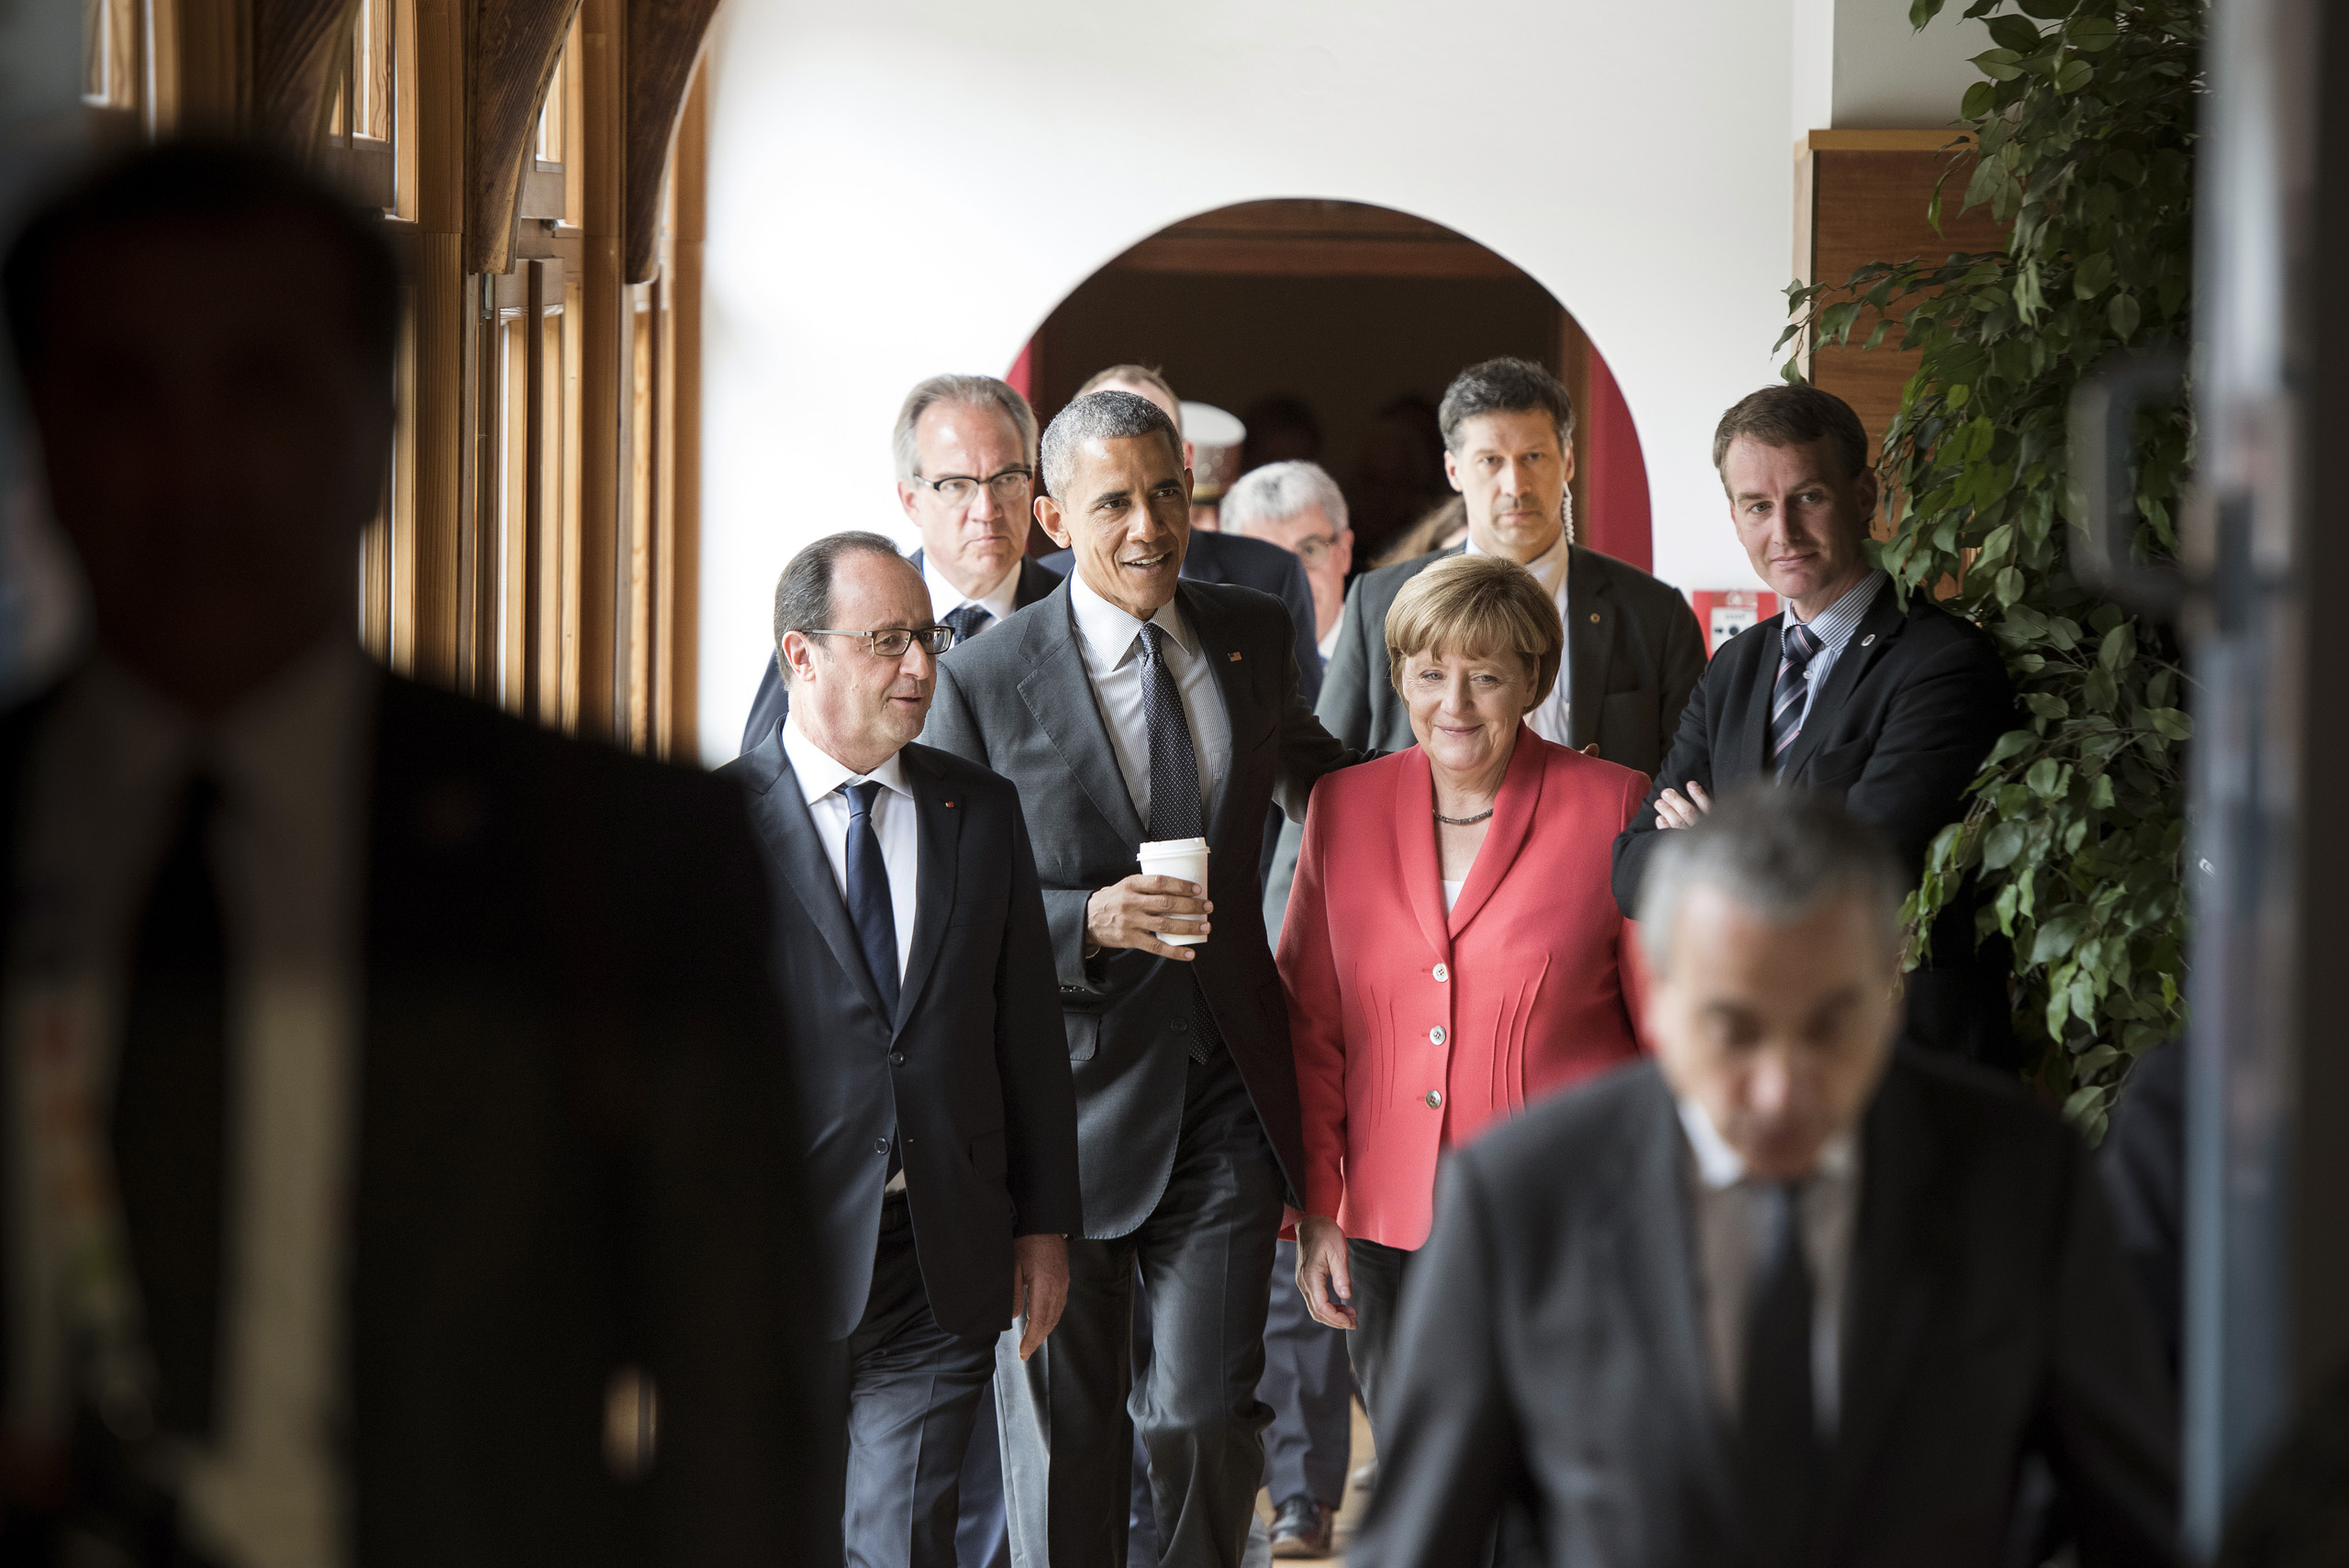 Federal Chancellor Angela Merkel, French President Francois Hollande and US President Barack Obama arrive to the G7/Outreach meeting during the G7 summit in Elmau. June 8, 2015.